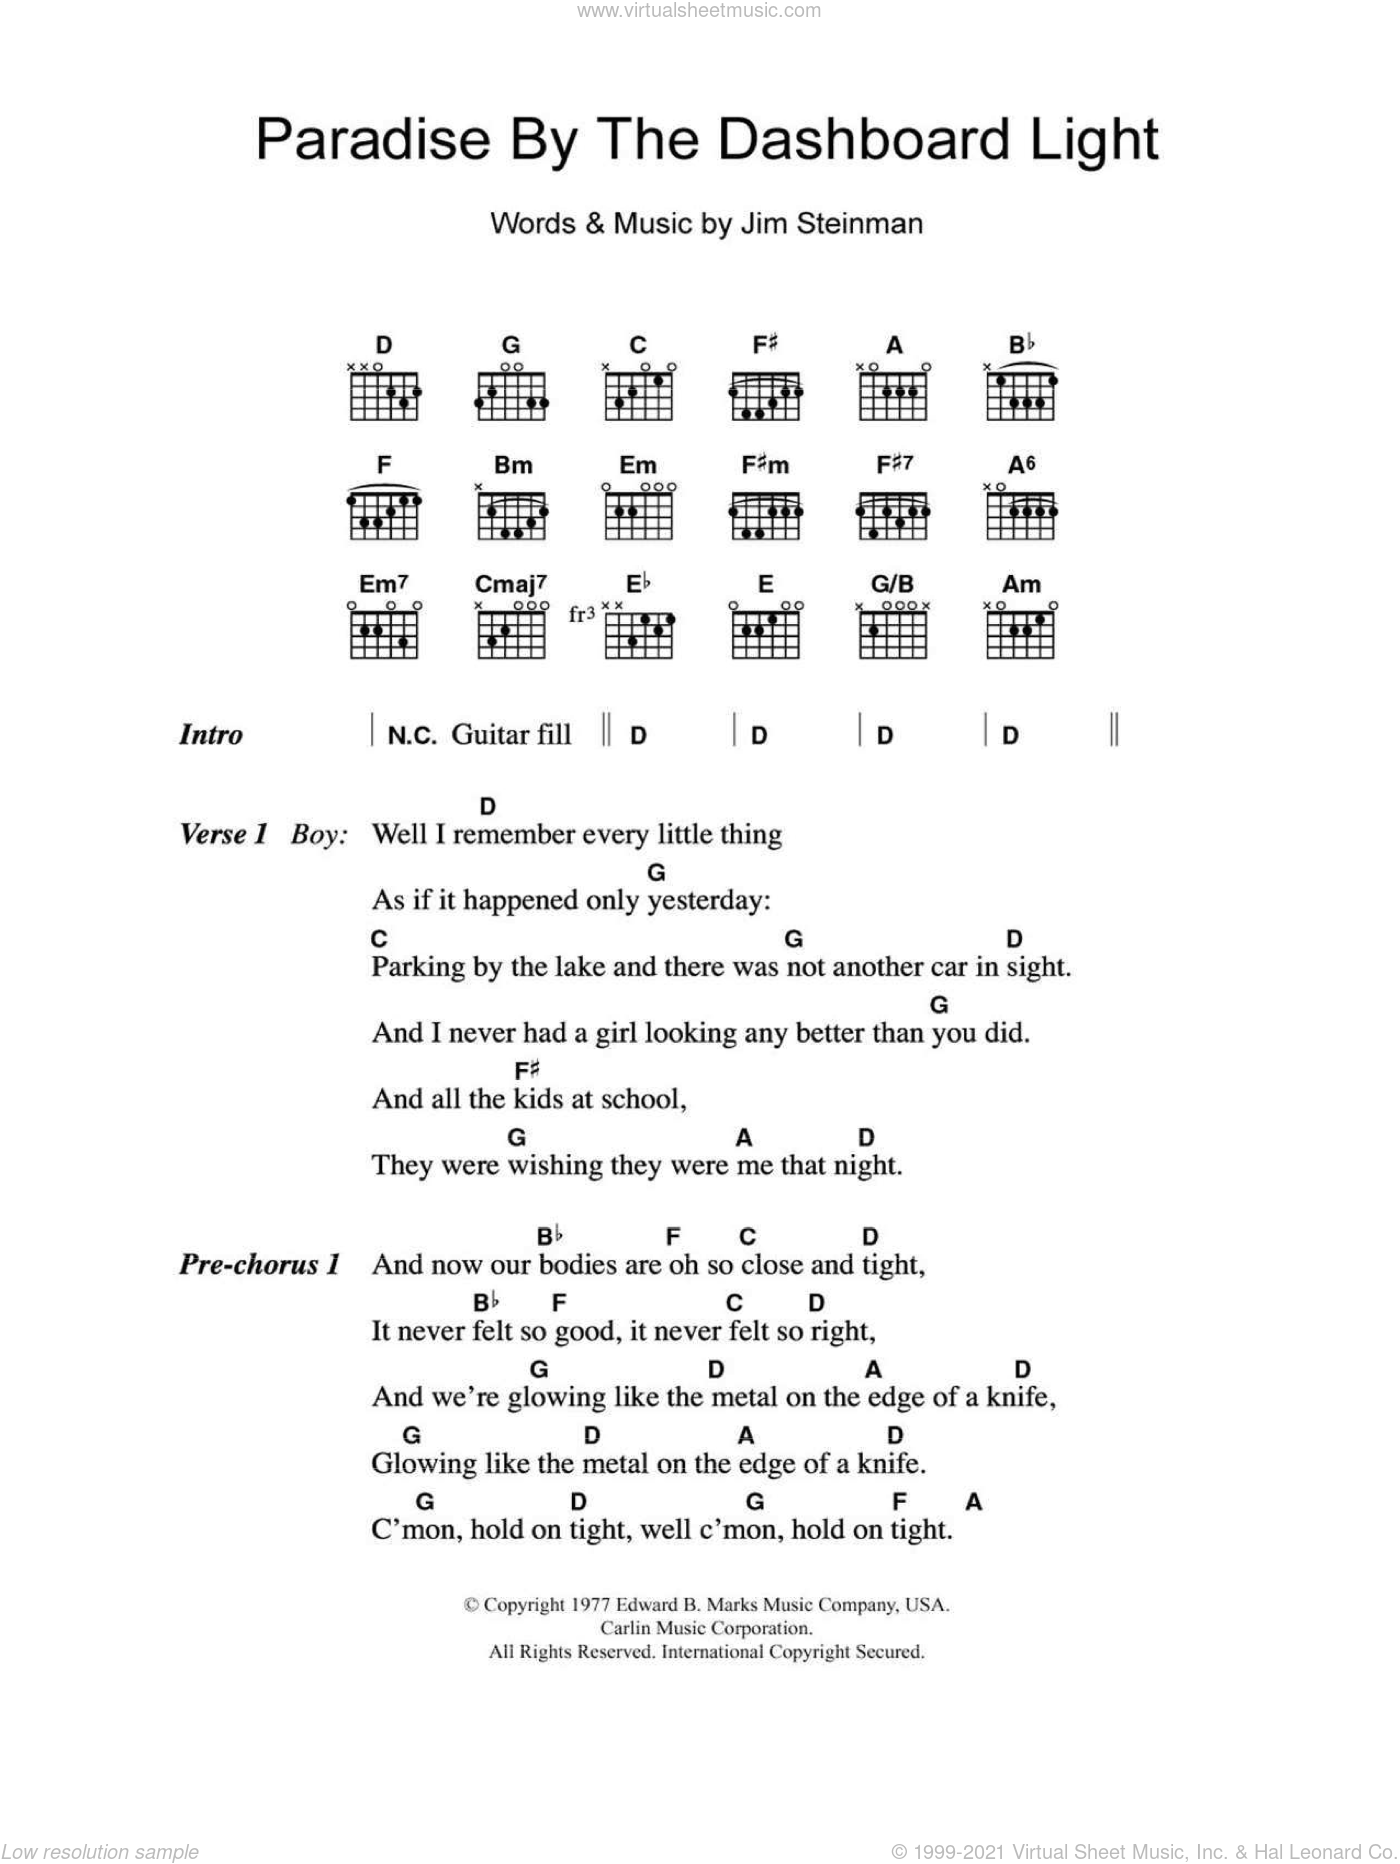 Paradise By The Dashboard Light sheet music for guitar (chords, lyrics, melody) by Jim Steinman